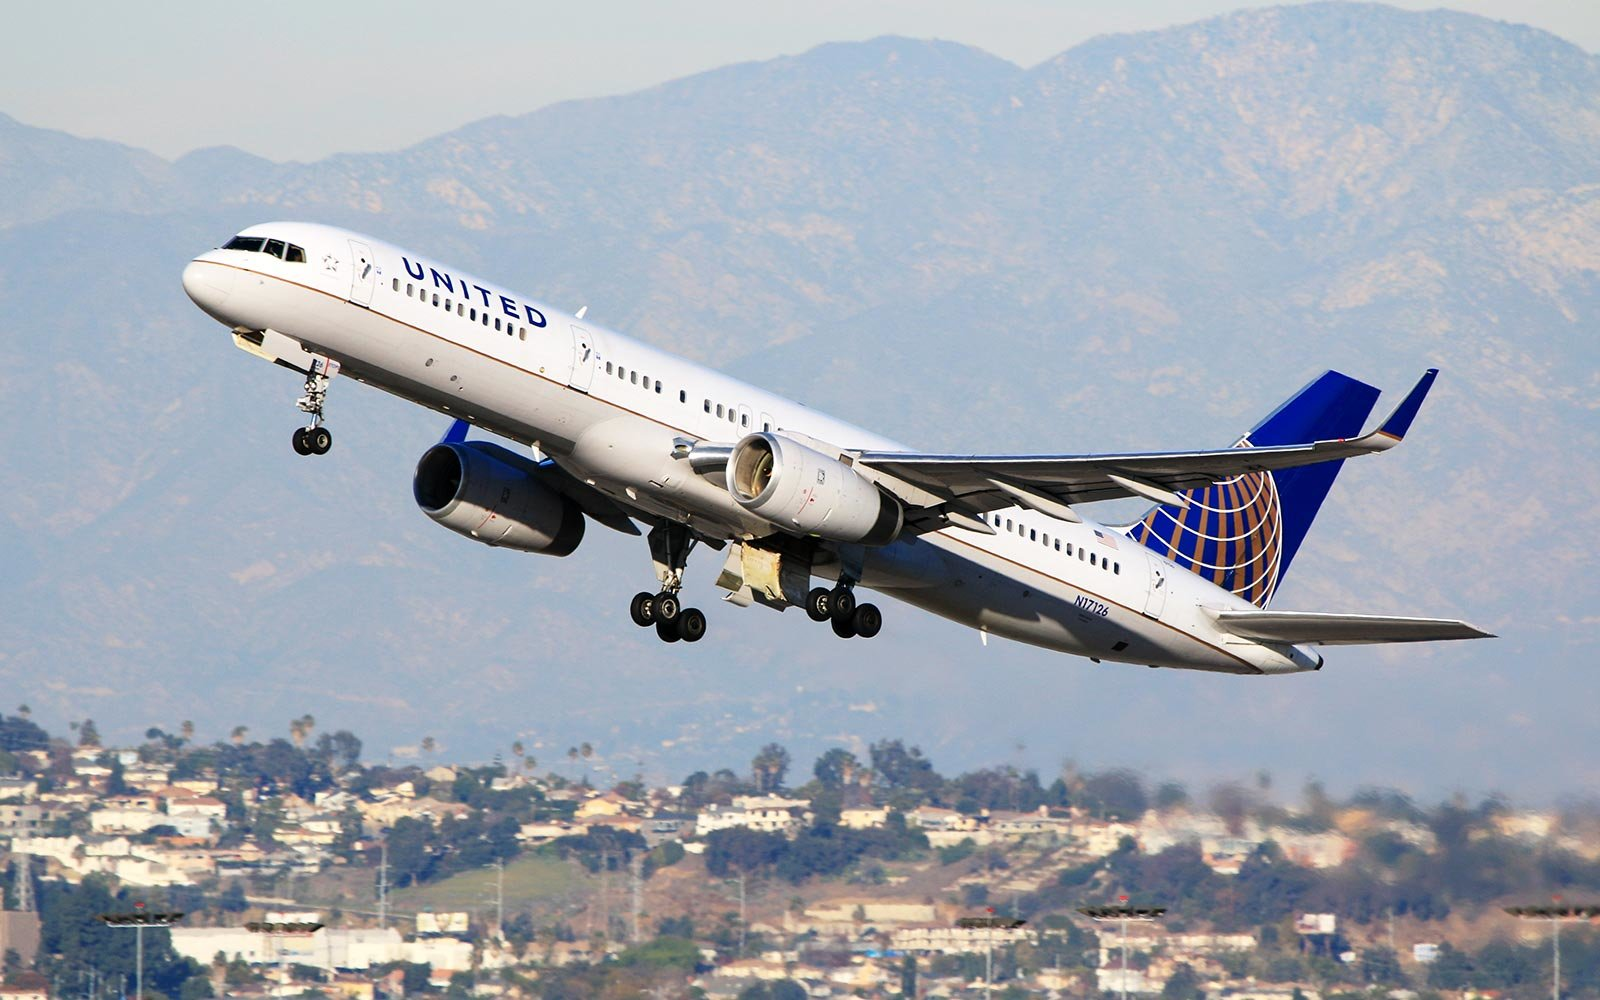 United Airlines Boeing 757 Airplane